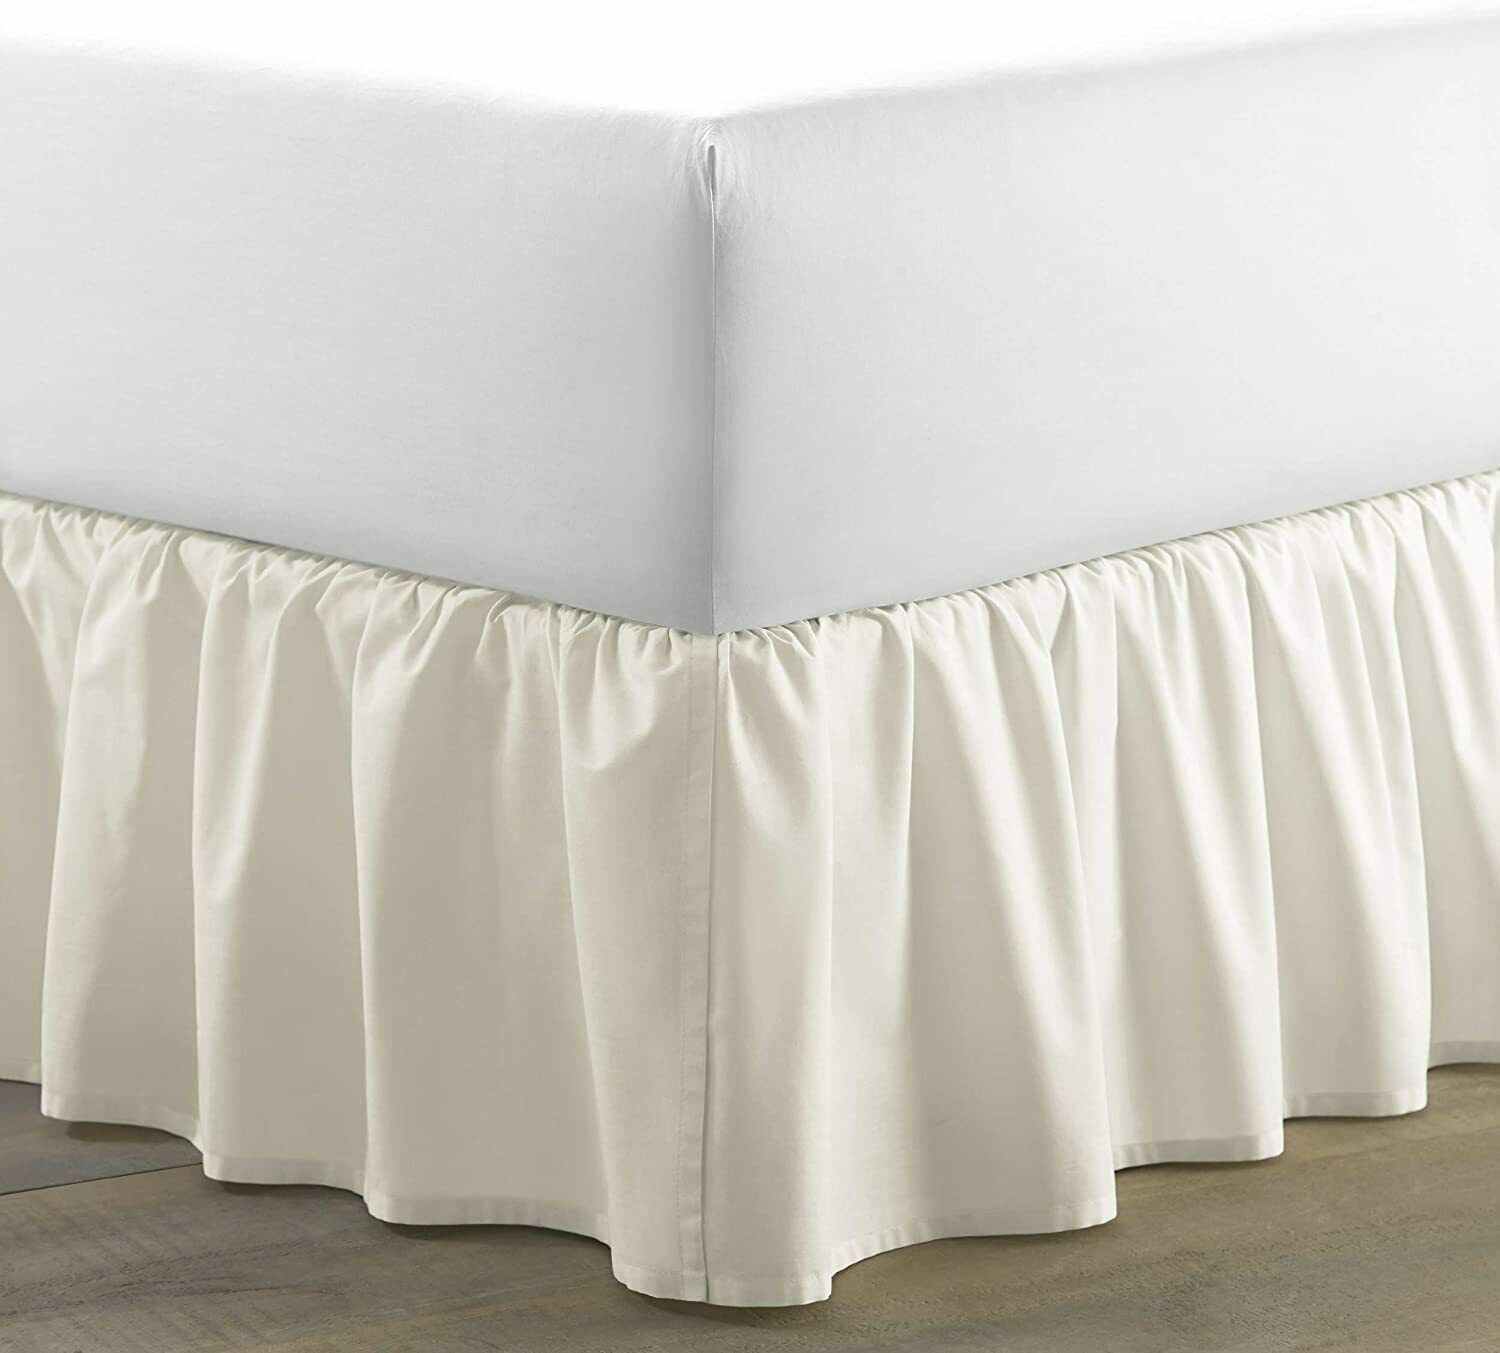 Laura Ashley Home | Solid Collection | Luxury Premium Hotel Bedskirt, Ivory - $28.71